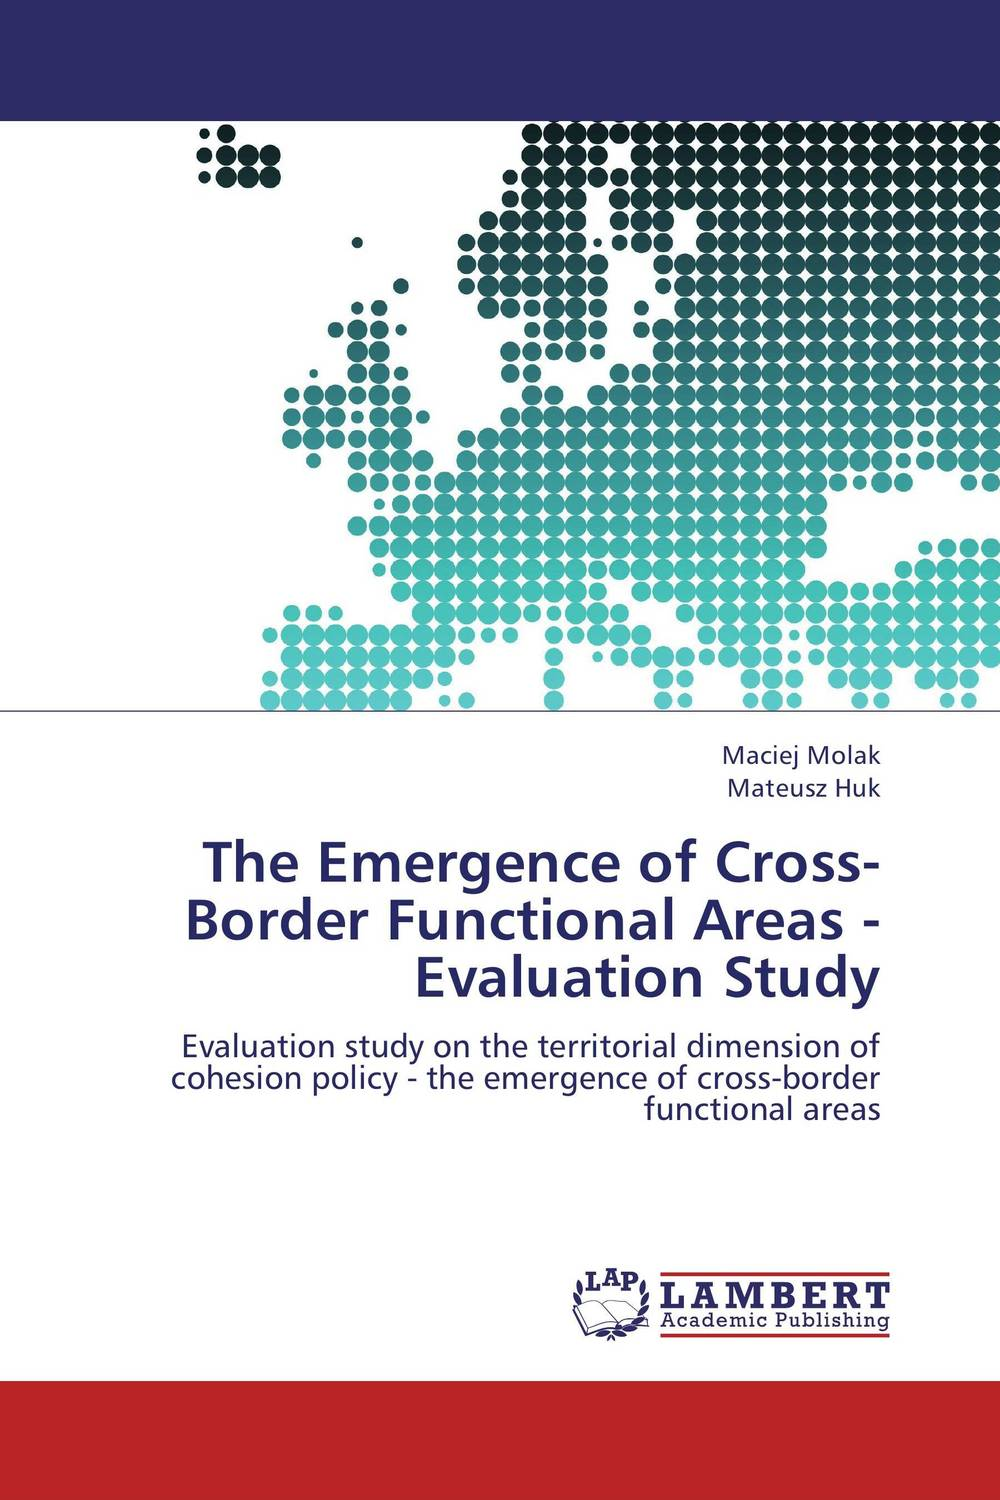 The Emergence of Cross-Border Functional Areas - Evaluation Study laurens j van mourik the process of cross border entrepreneurship